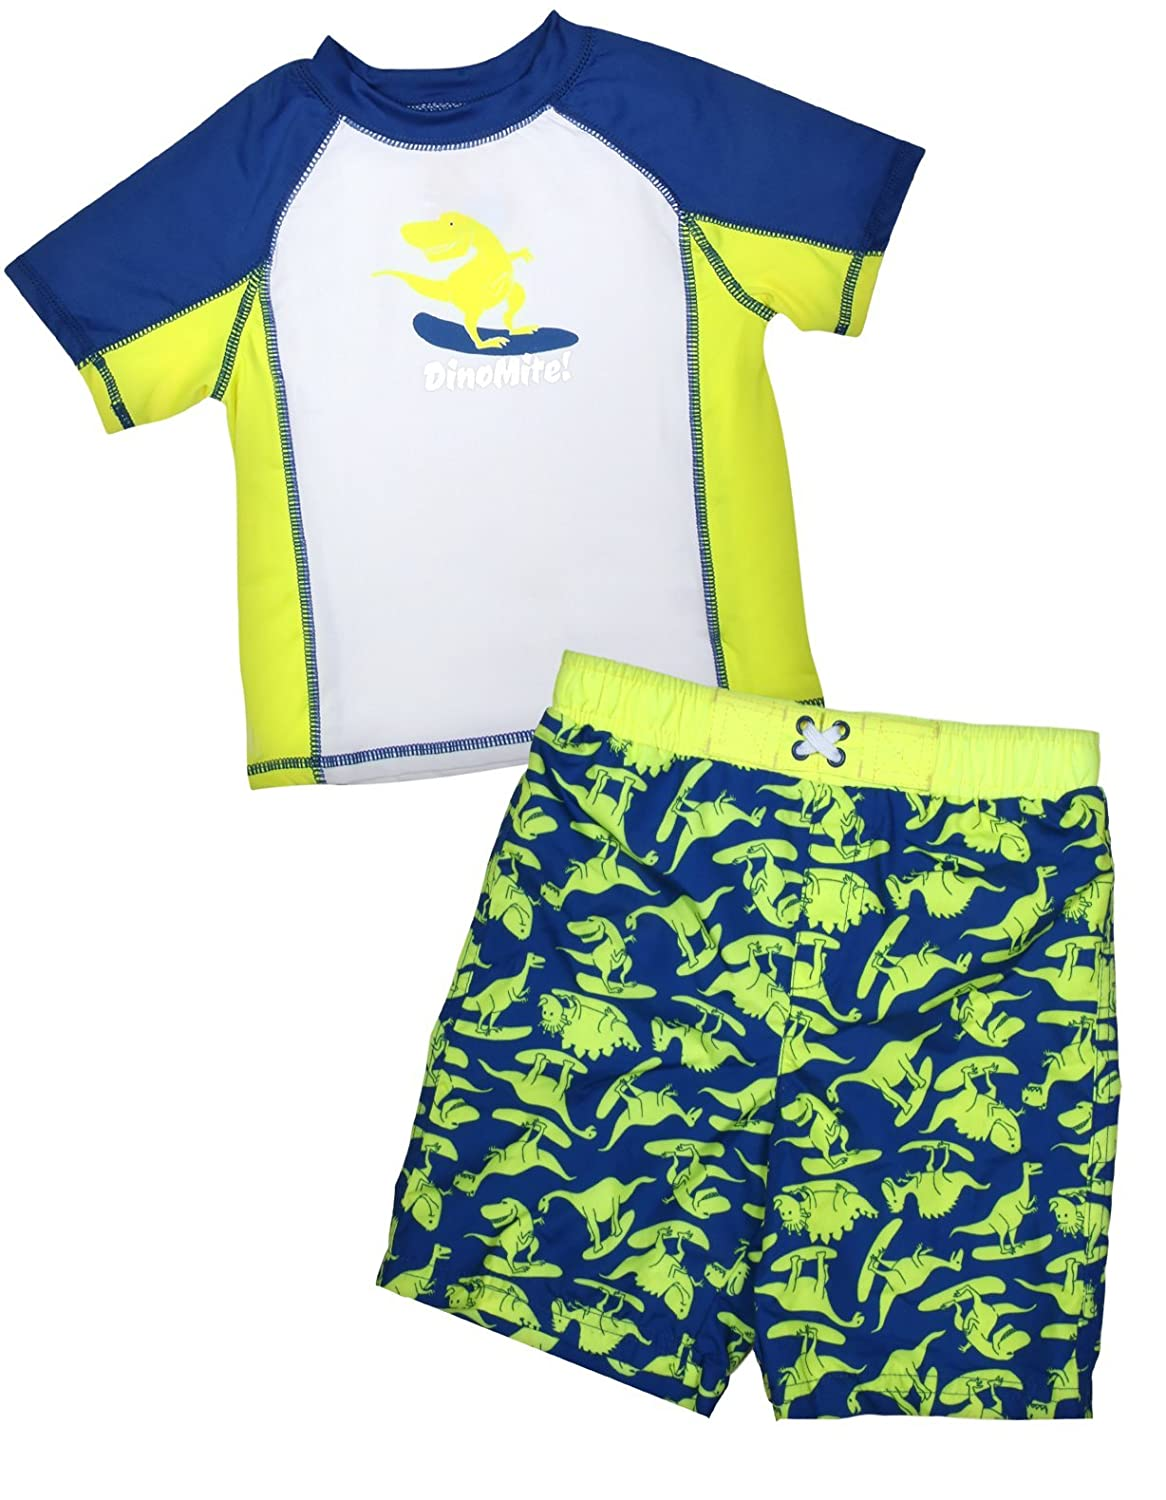 Baby Buns Little Boy's 2-Piece Rash Guard Bathing Suit Set